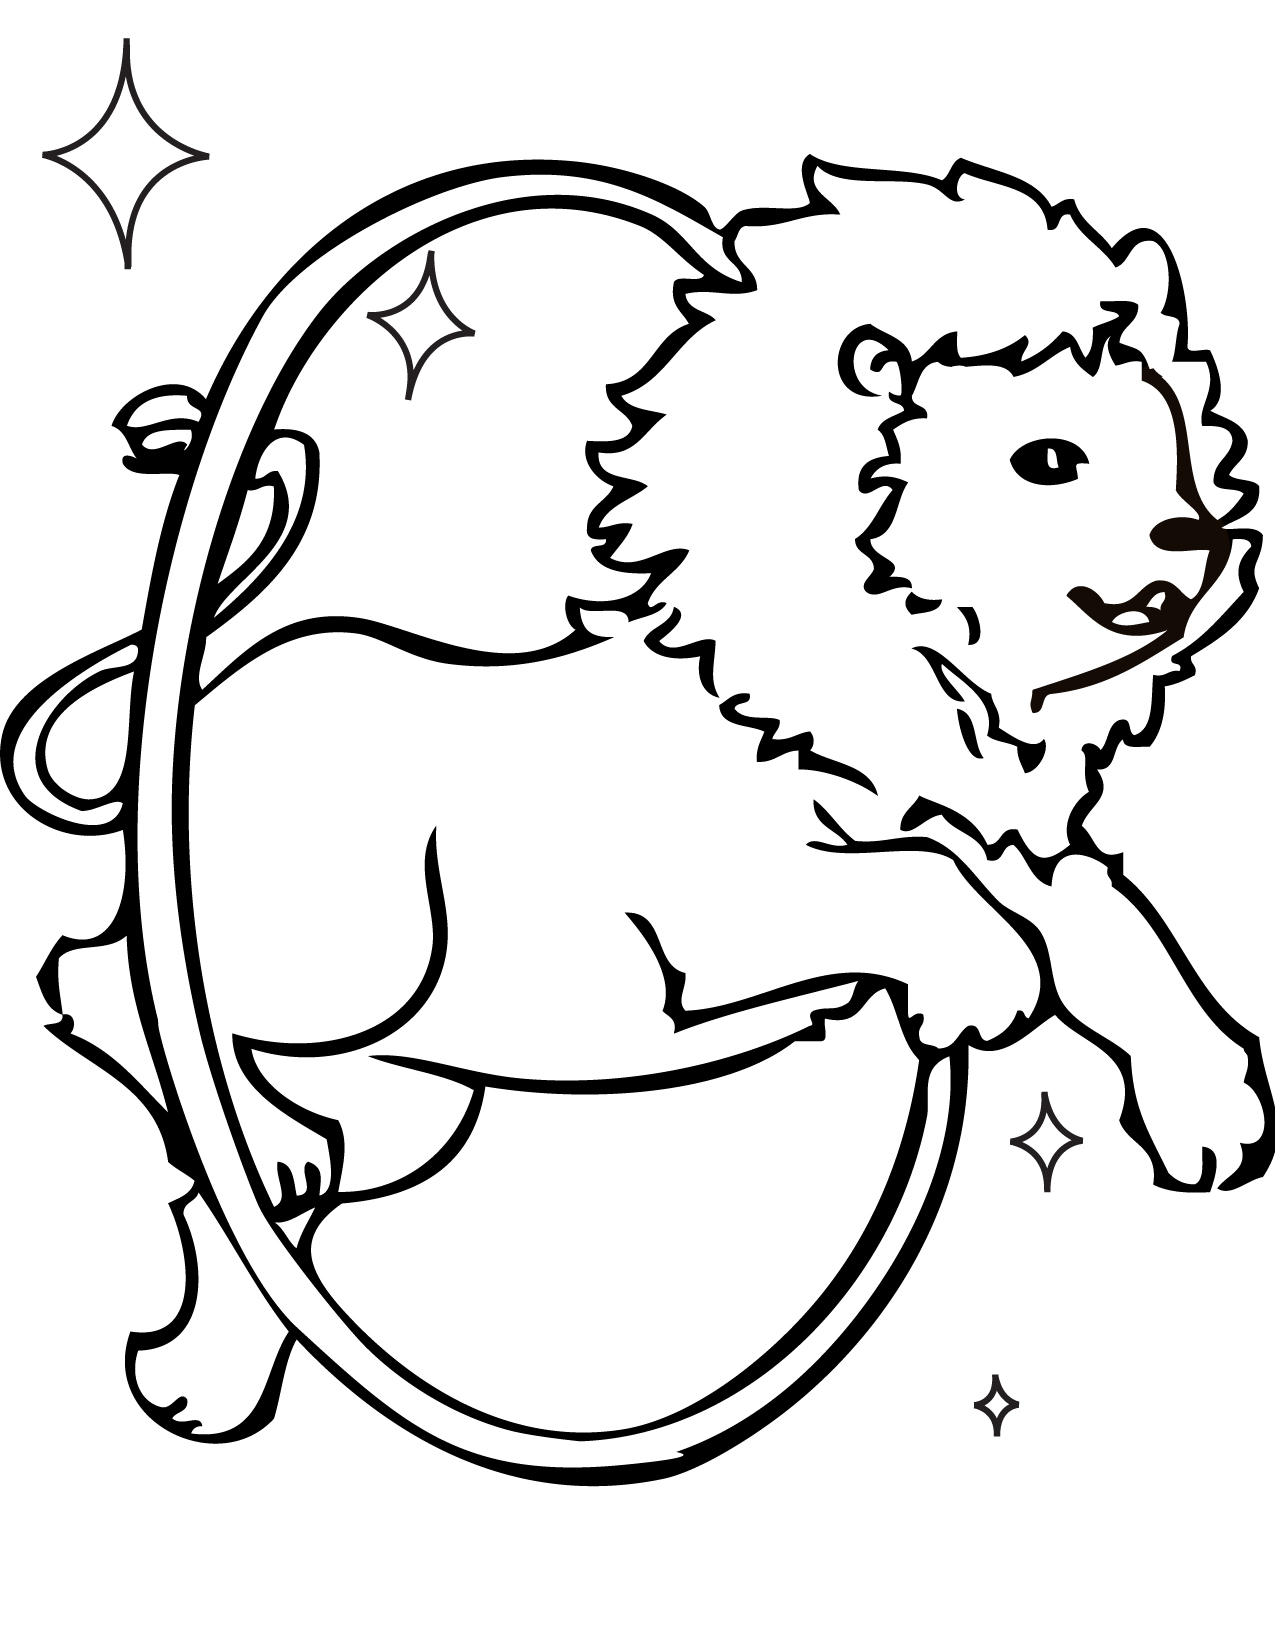 free downloadable circus coloring pages - photo#25